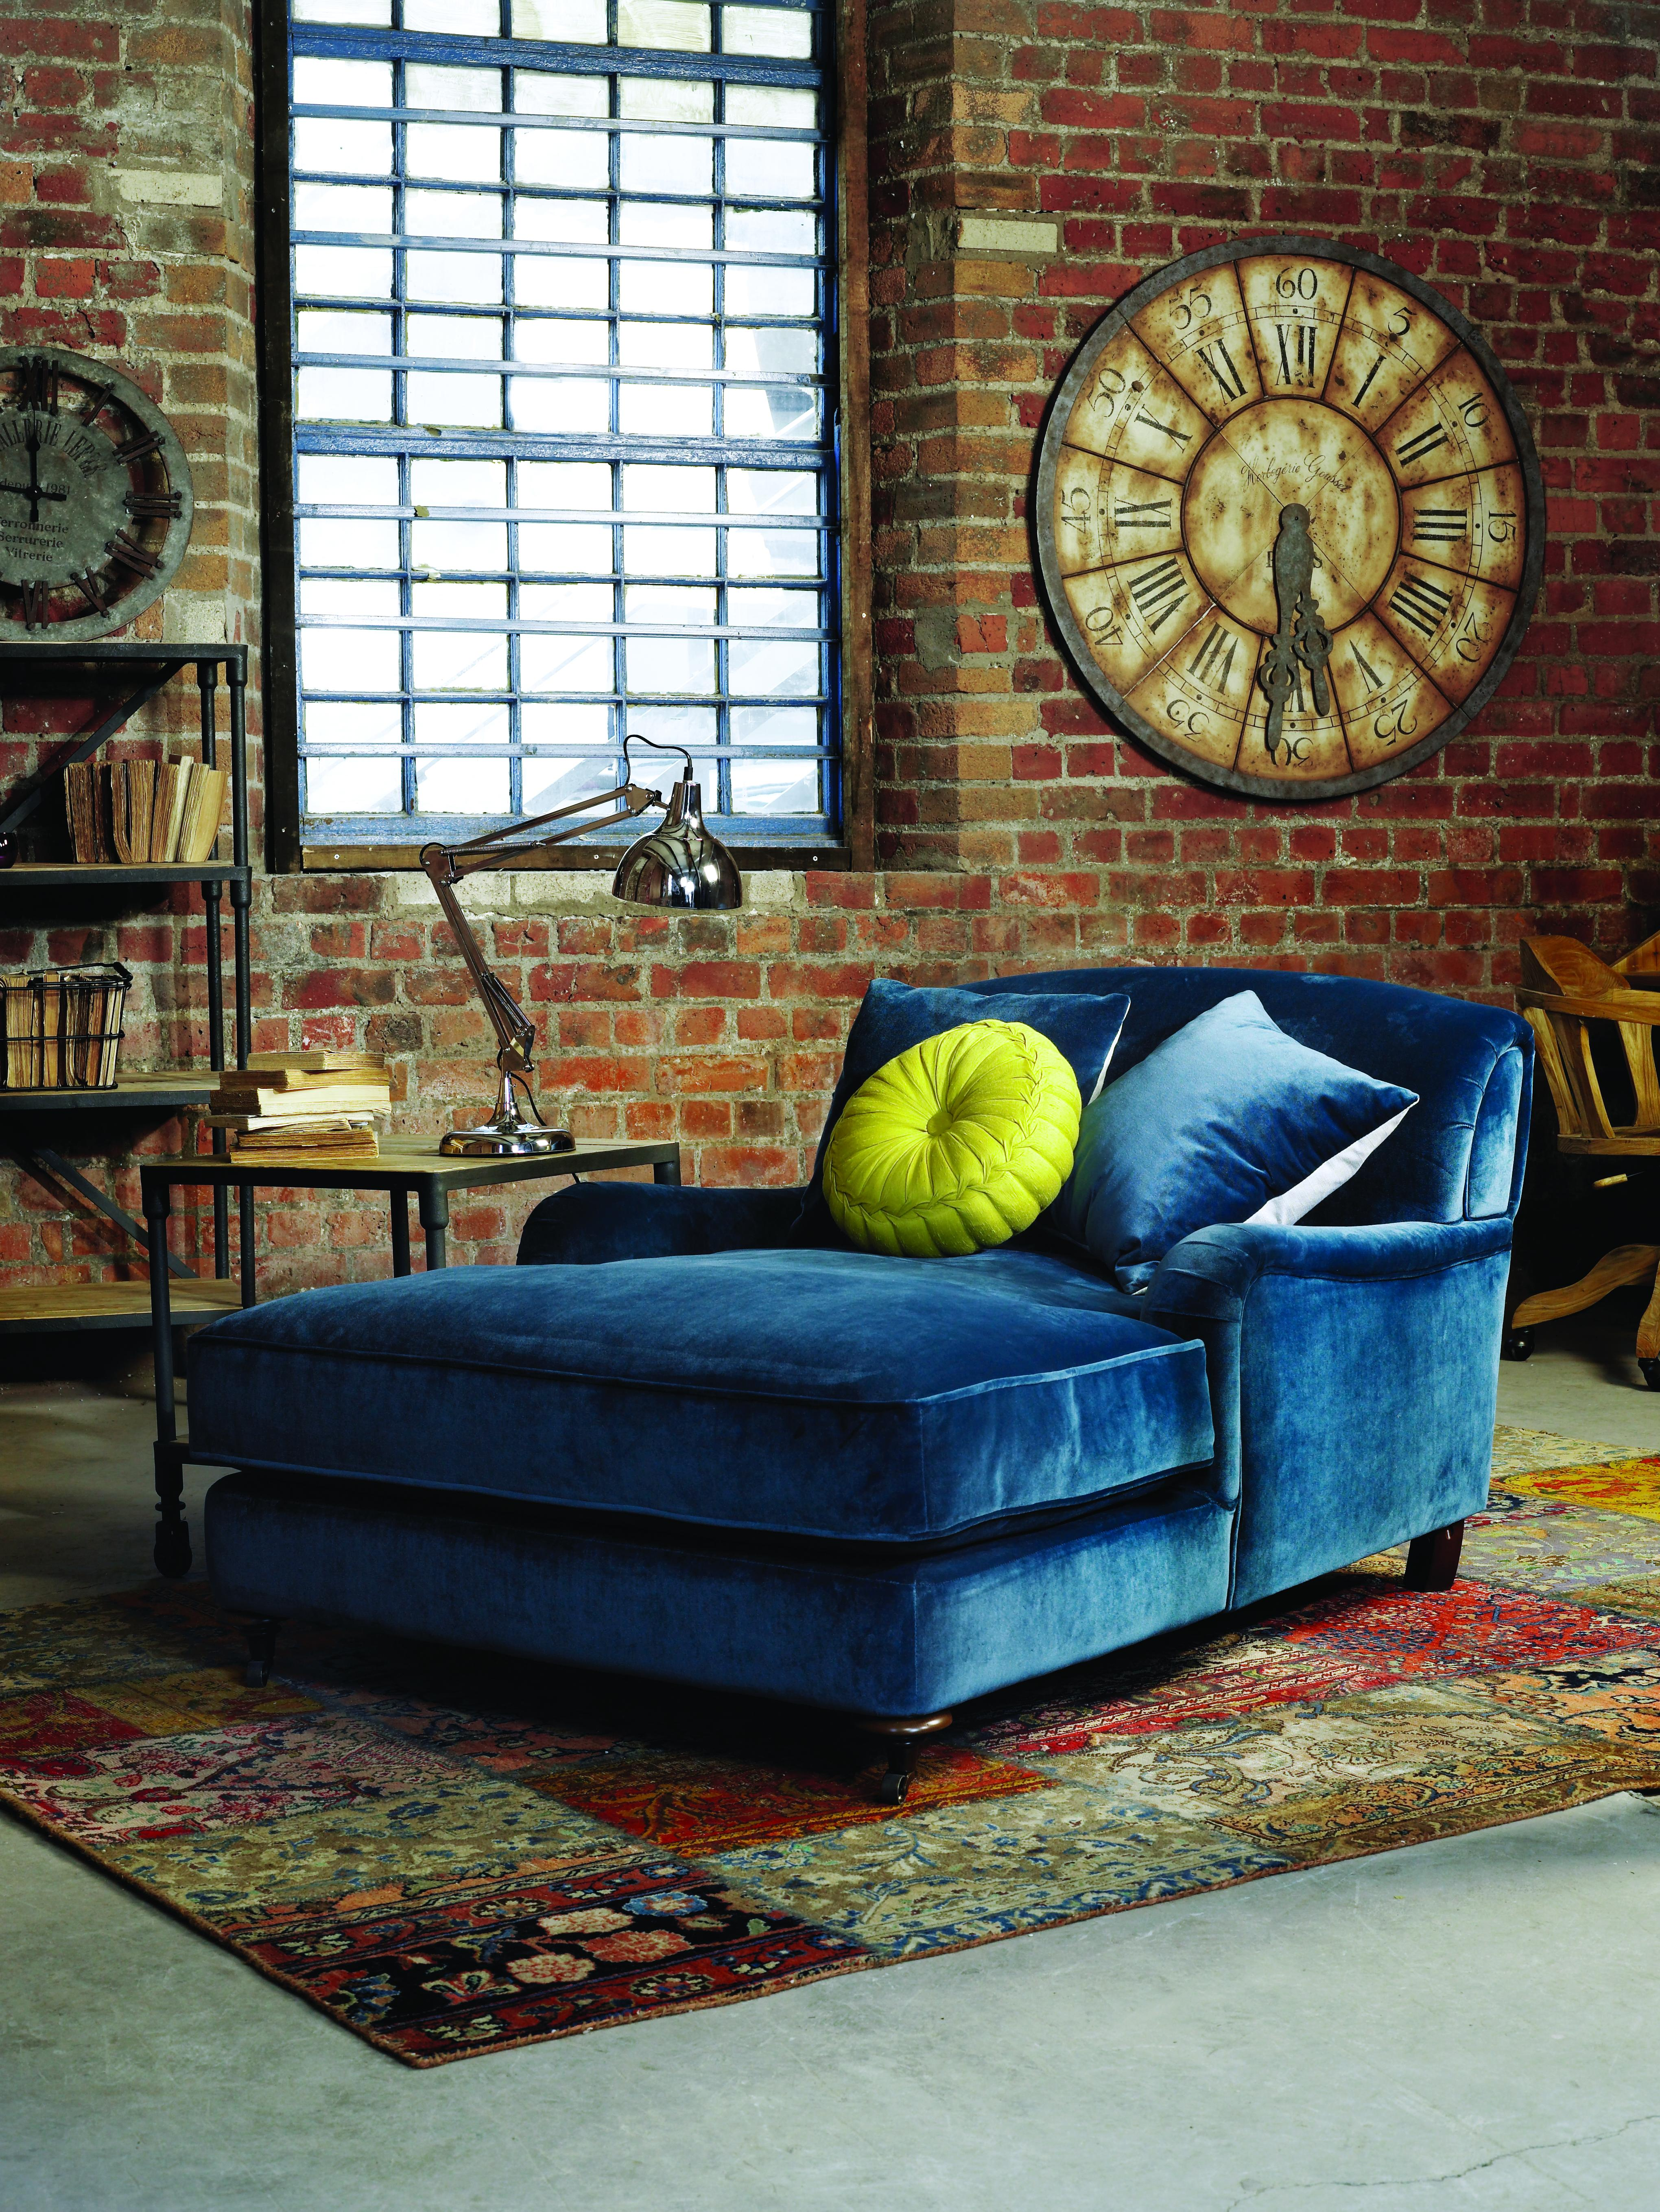 beautiful sleeper sofa amazon picture-Best Sleeper sofa Amazon Image